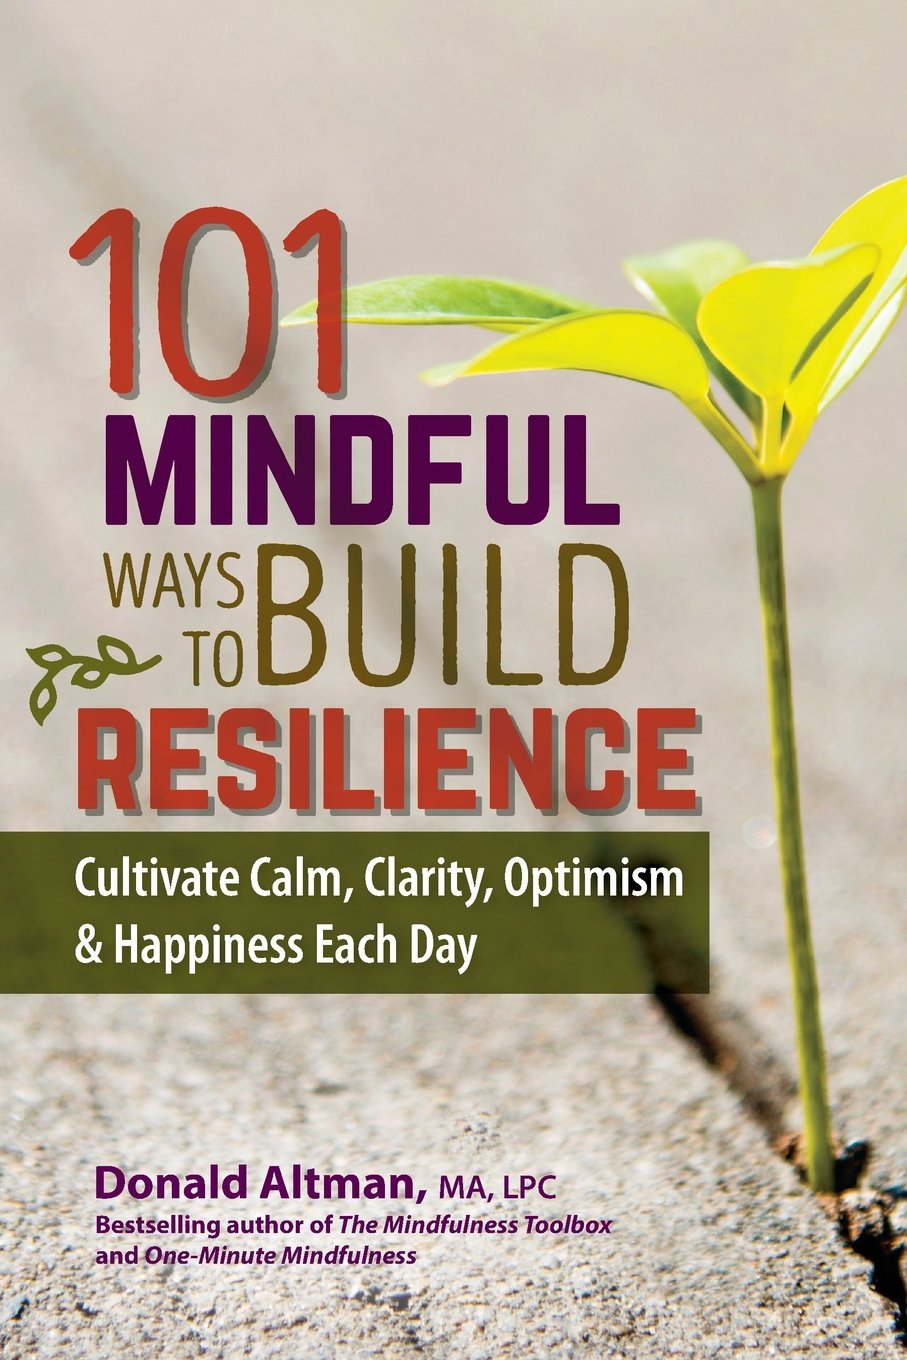 101 Mindful Ways to Build Resilience: Cultivate Calm, Clarity, Optimism & Happiness Each Day pdf